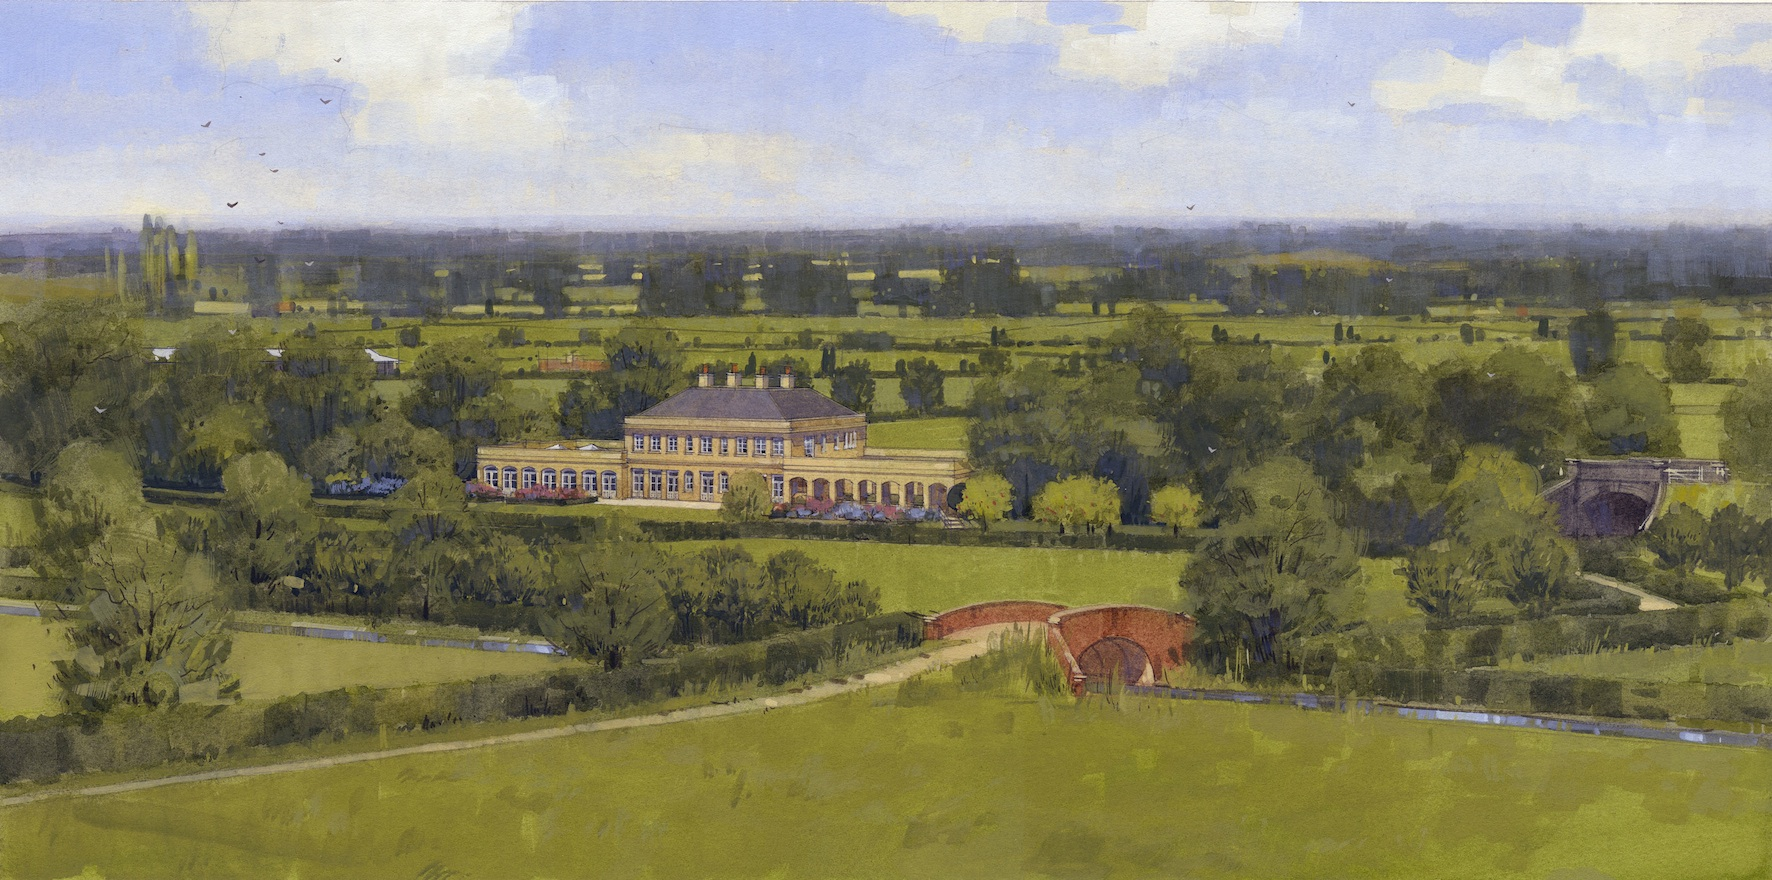 image101 colvin & moggridge innovative placement of new classical country,Planning Permission For New House